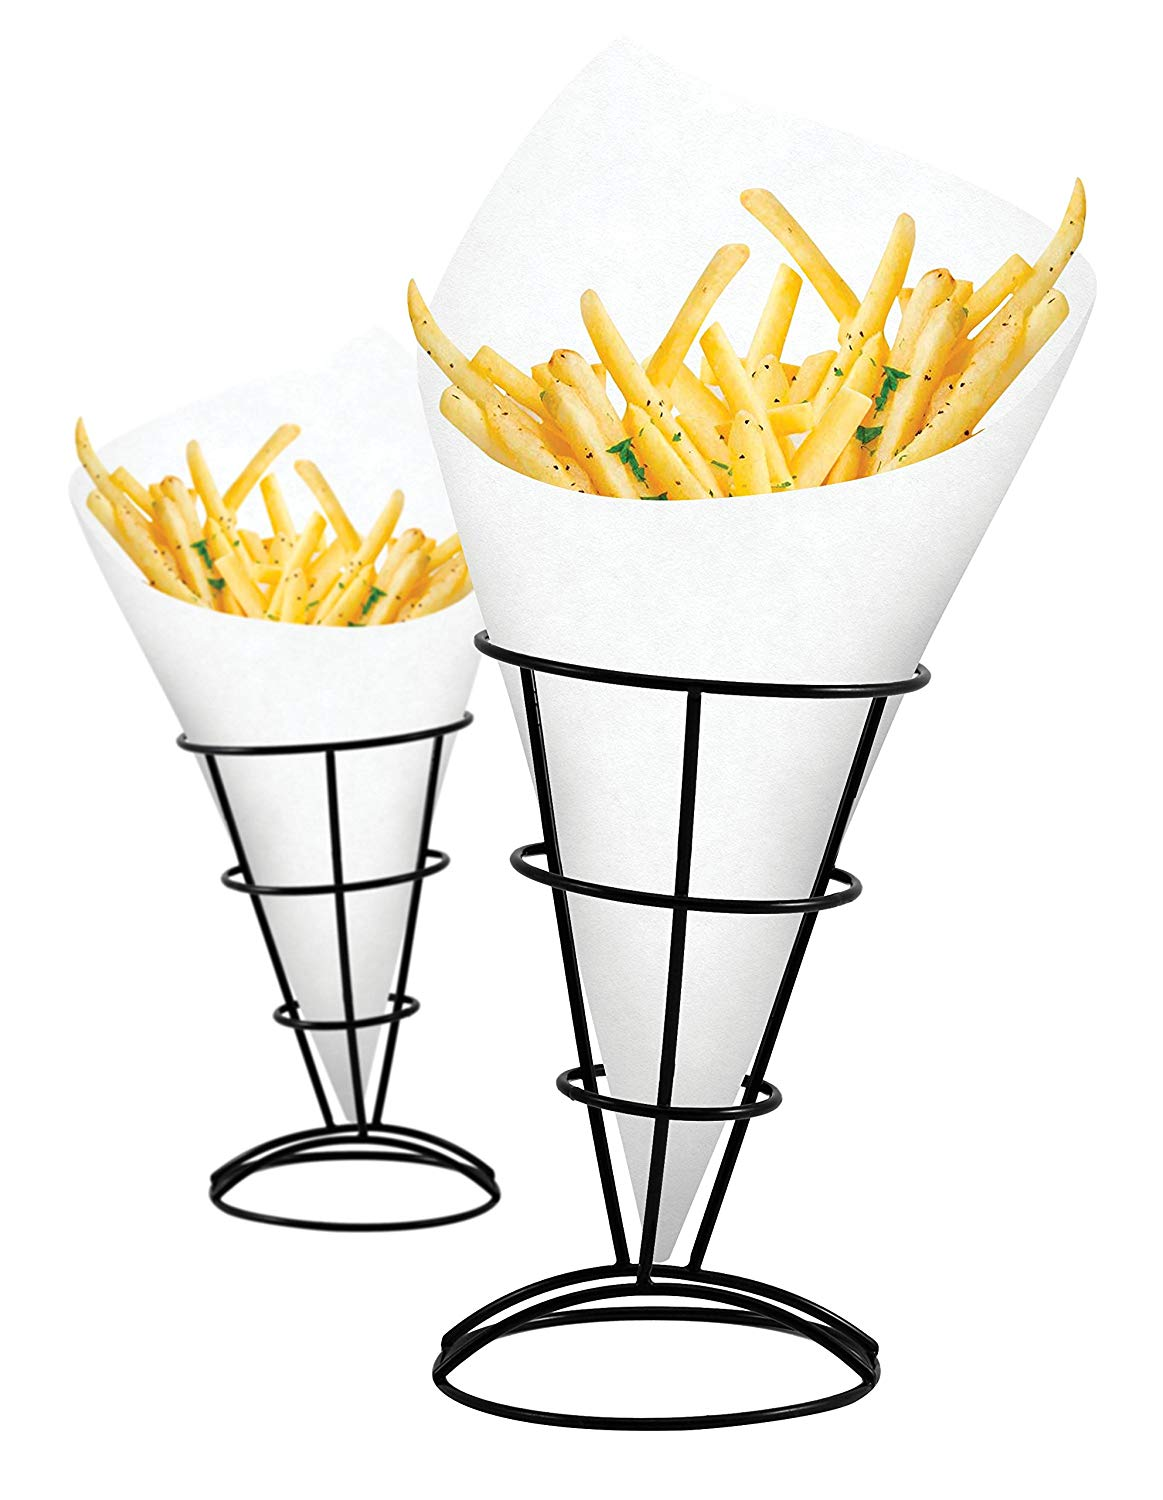 Fries clipart appetizer.  piece french fry